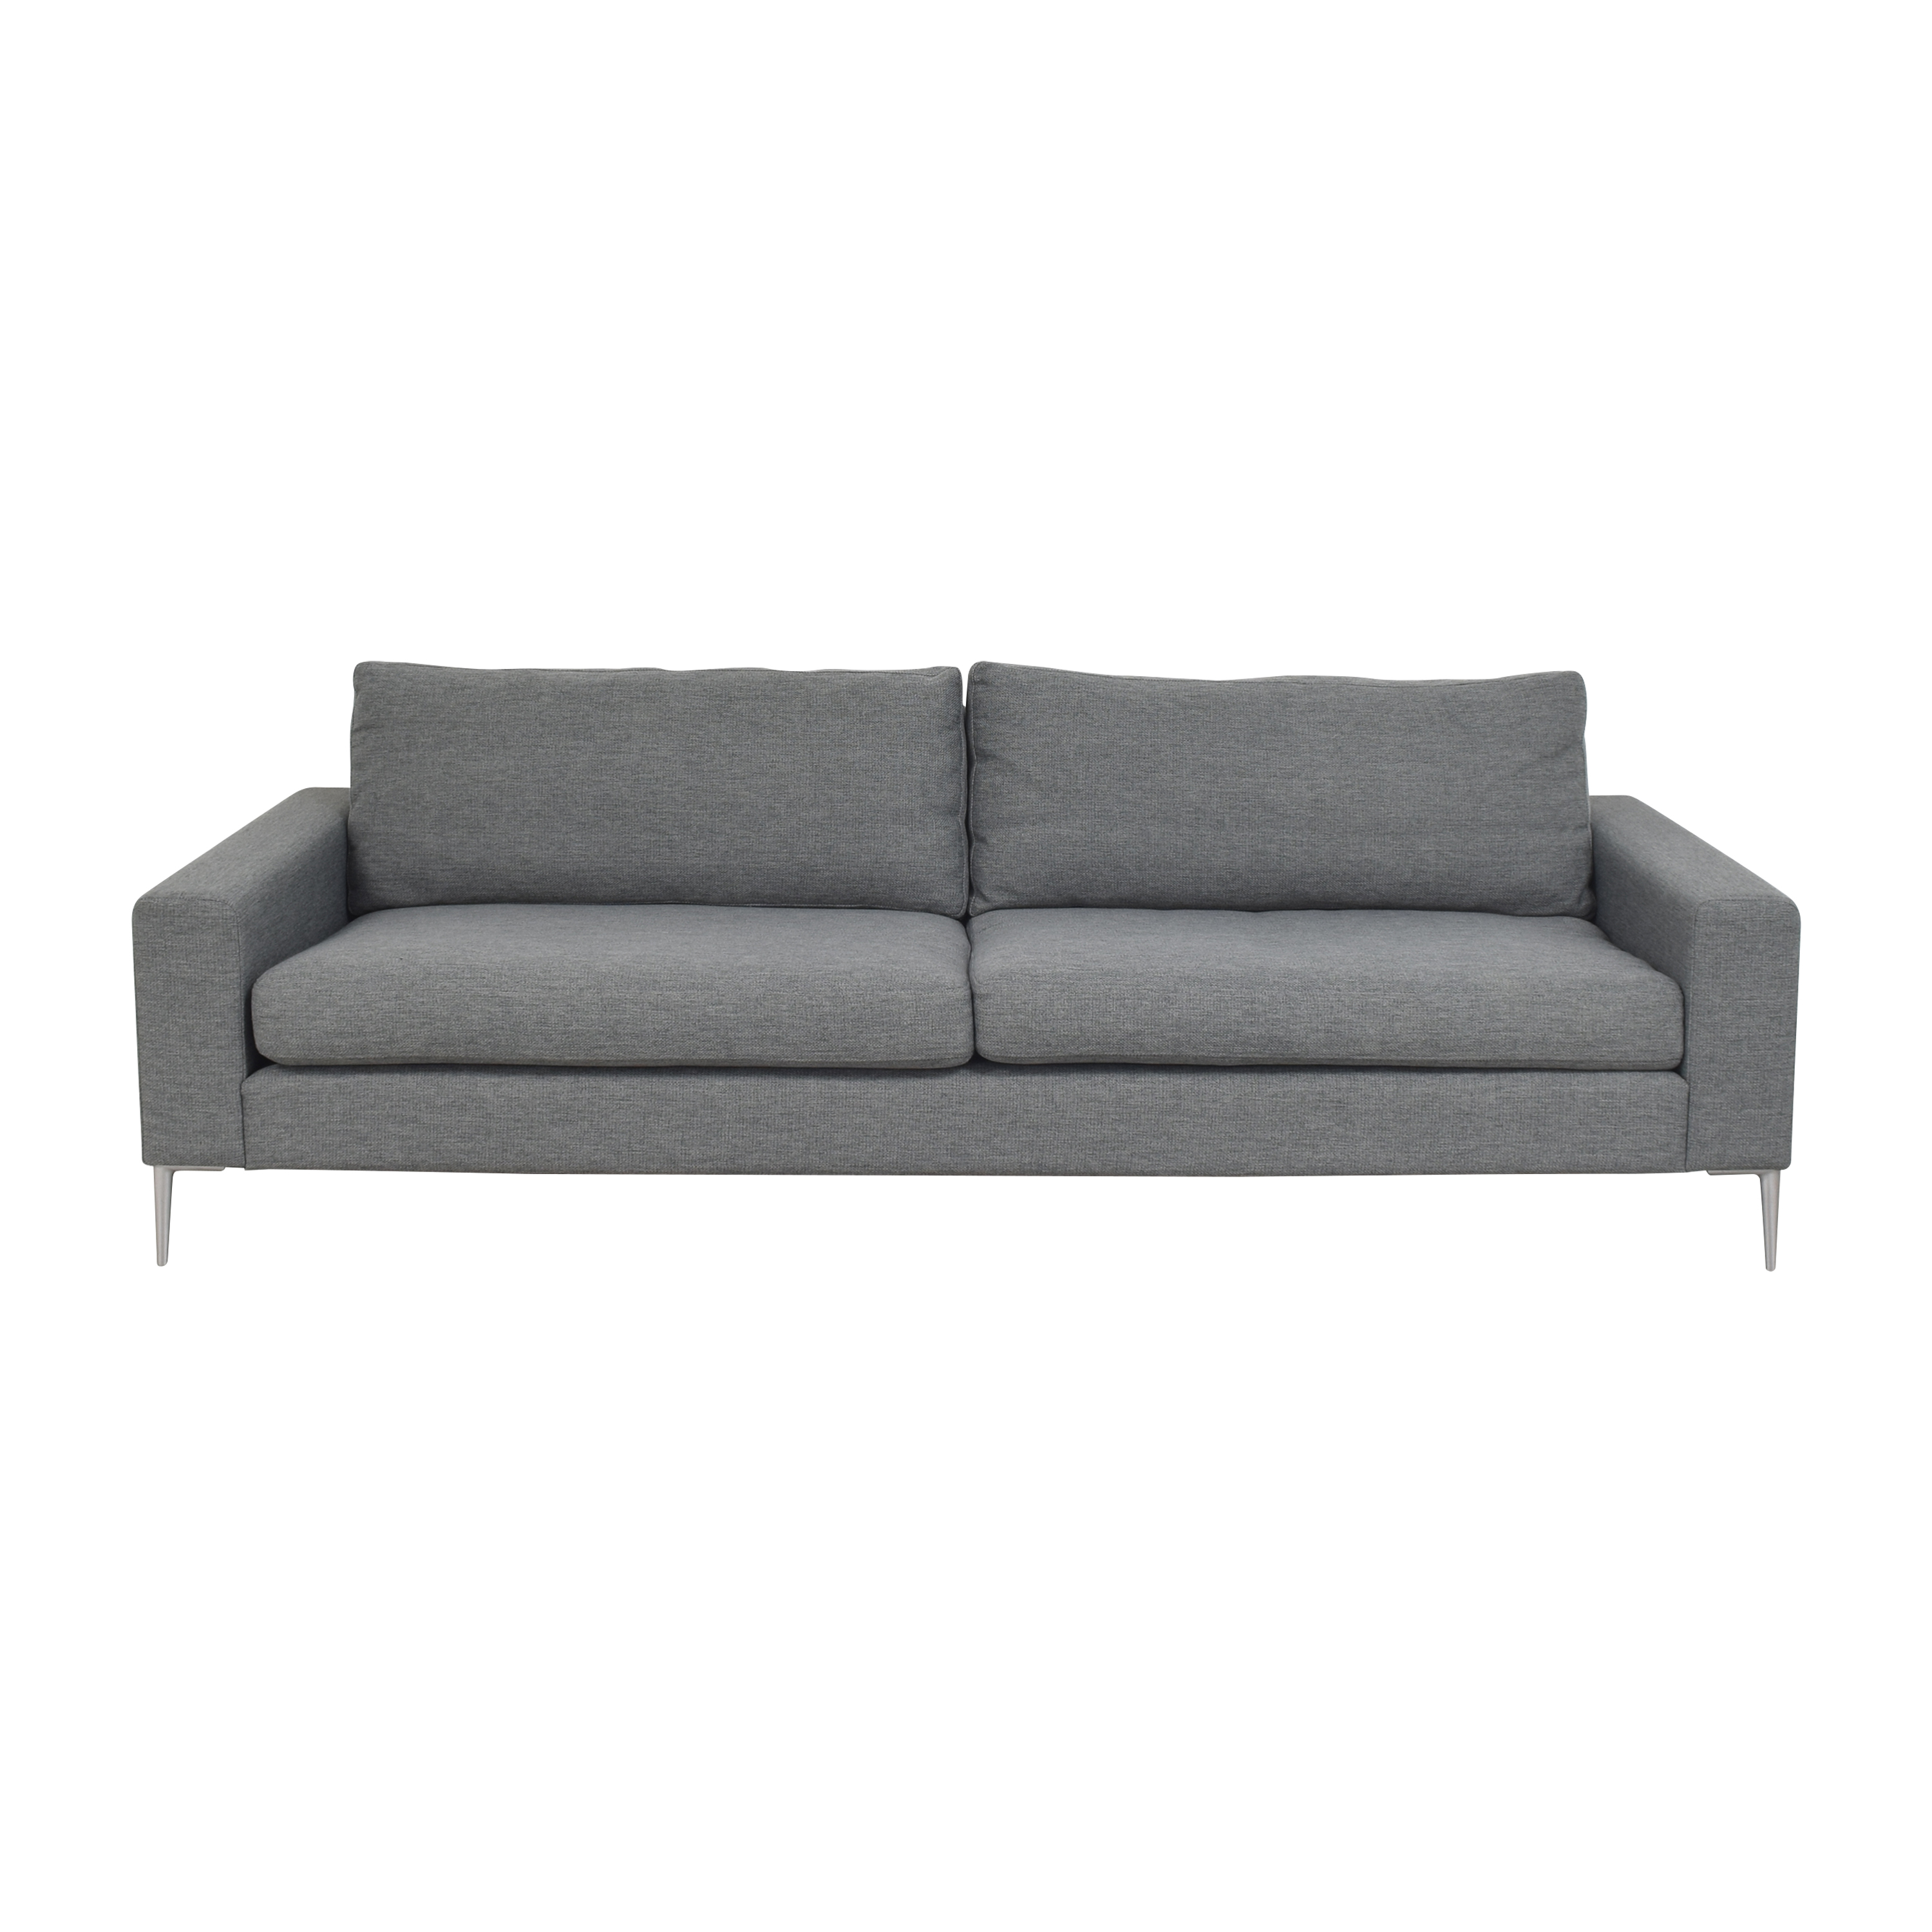 Article Article Nova Two Cushion Sofa nj